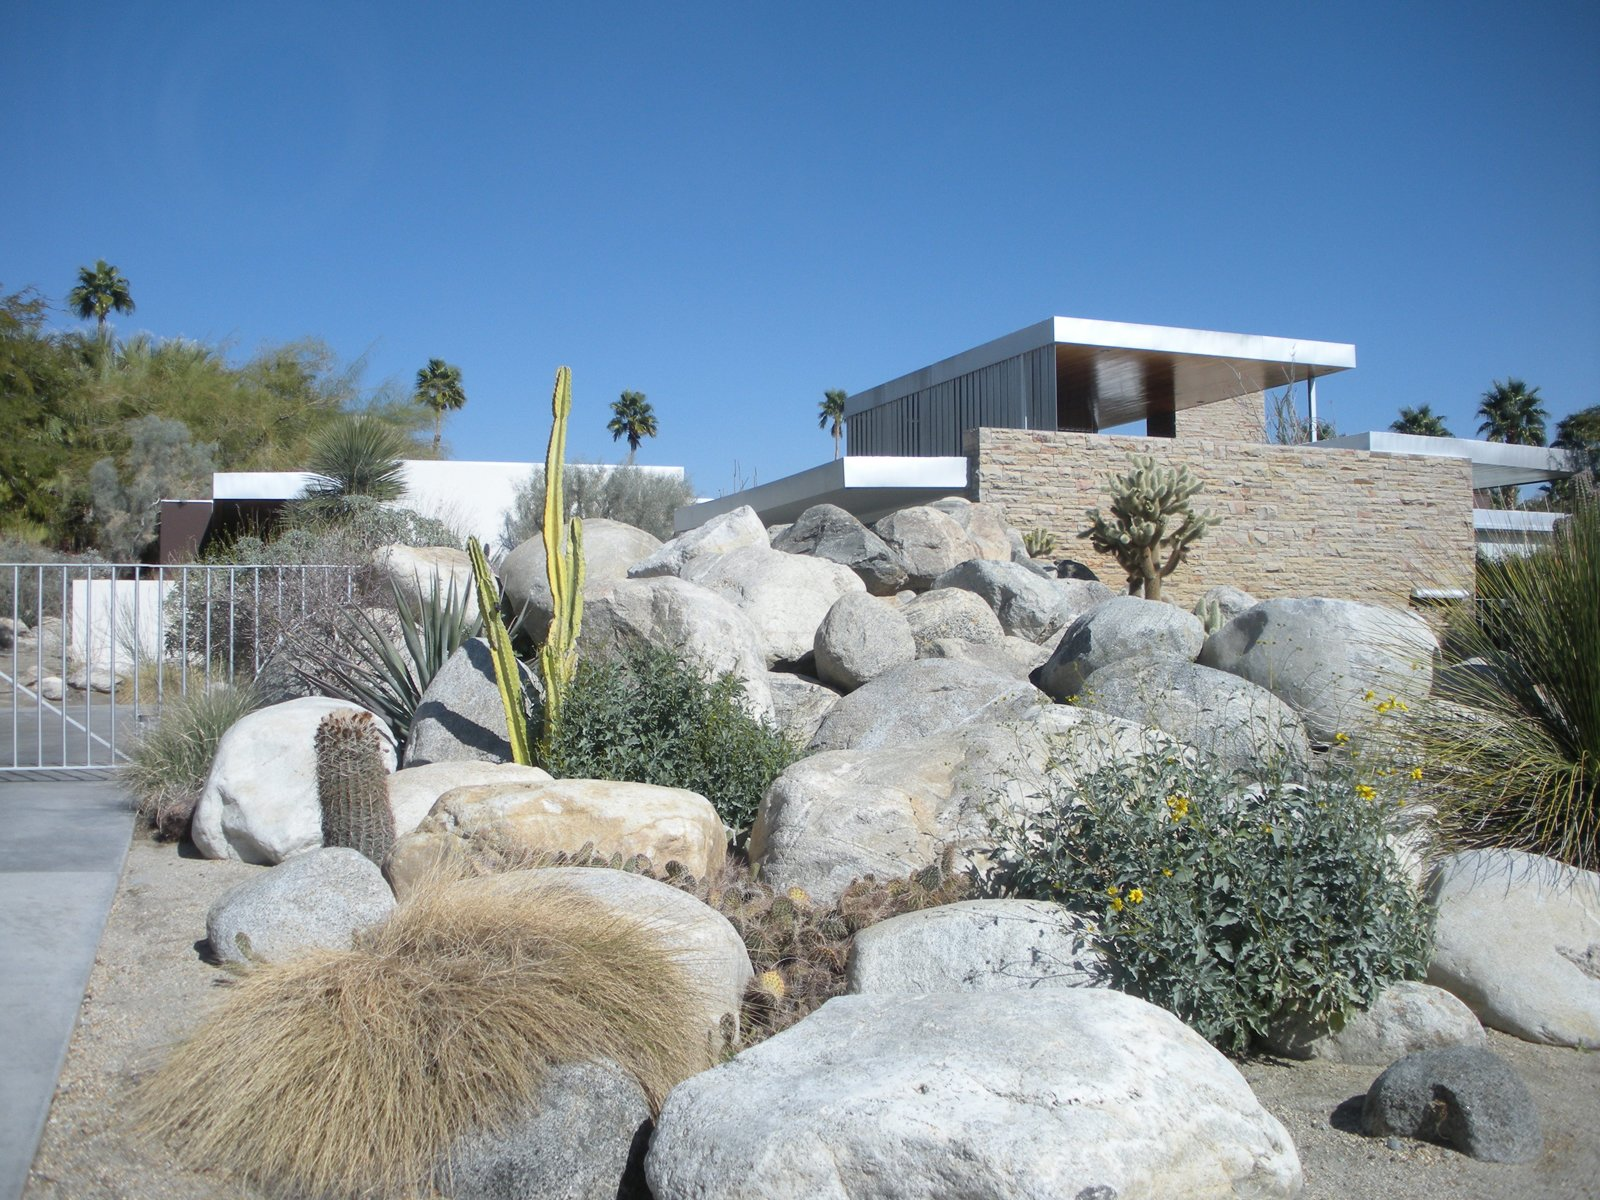 In the 1940s, Edgar J. Kaufmann, a Pittsburgh department store giant and the same Kaufmann who commissioned Frank Lloyd Wright to build his Falling Water home in Pennsylvania, asked architect Richard Neutra to built a vacation home for his family in Palm Springs. The resulting home is now one of Neutra's best-known works.  Photo 1 of 7 in Palm Springs, California